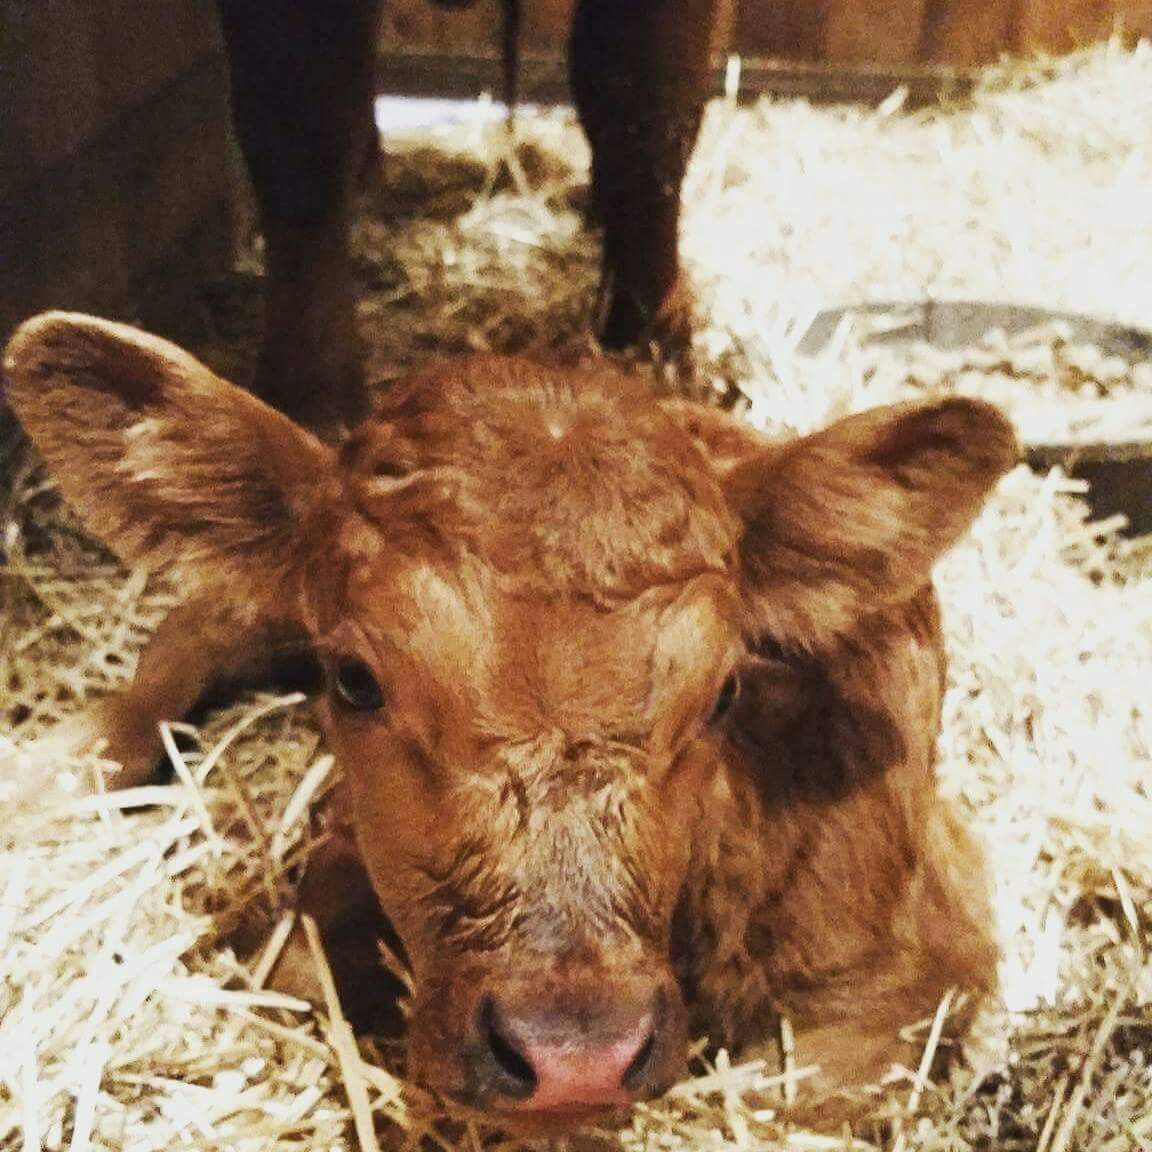 So happy to announce the new addition to our #zymoxfamily! Both momma and baby are healthy and safe. Such a cutie! #ZYMOXFamily #dextercattle #texas #texaslife #zymox